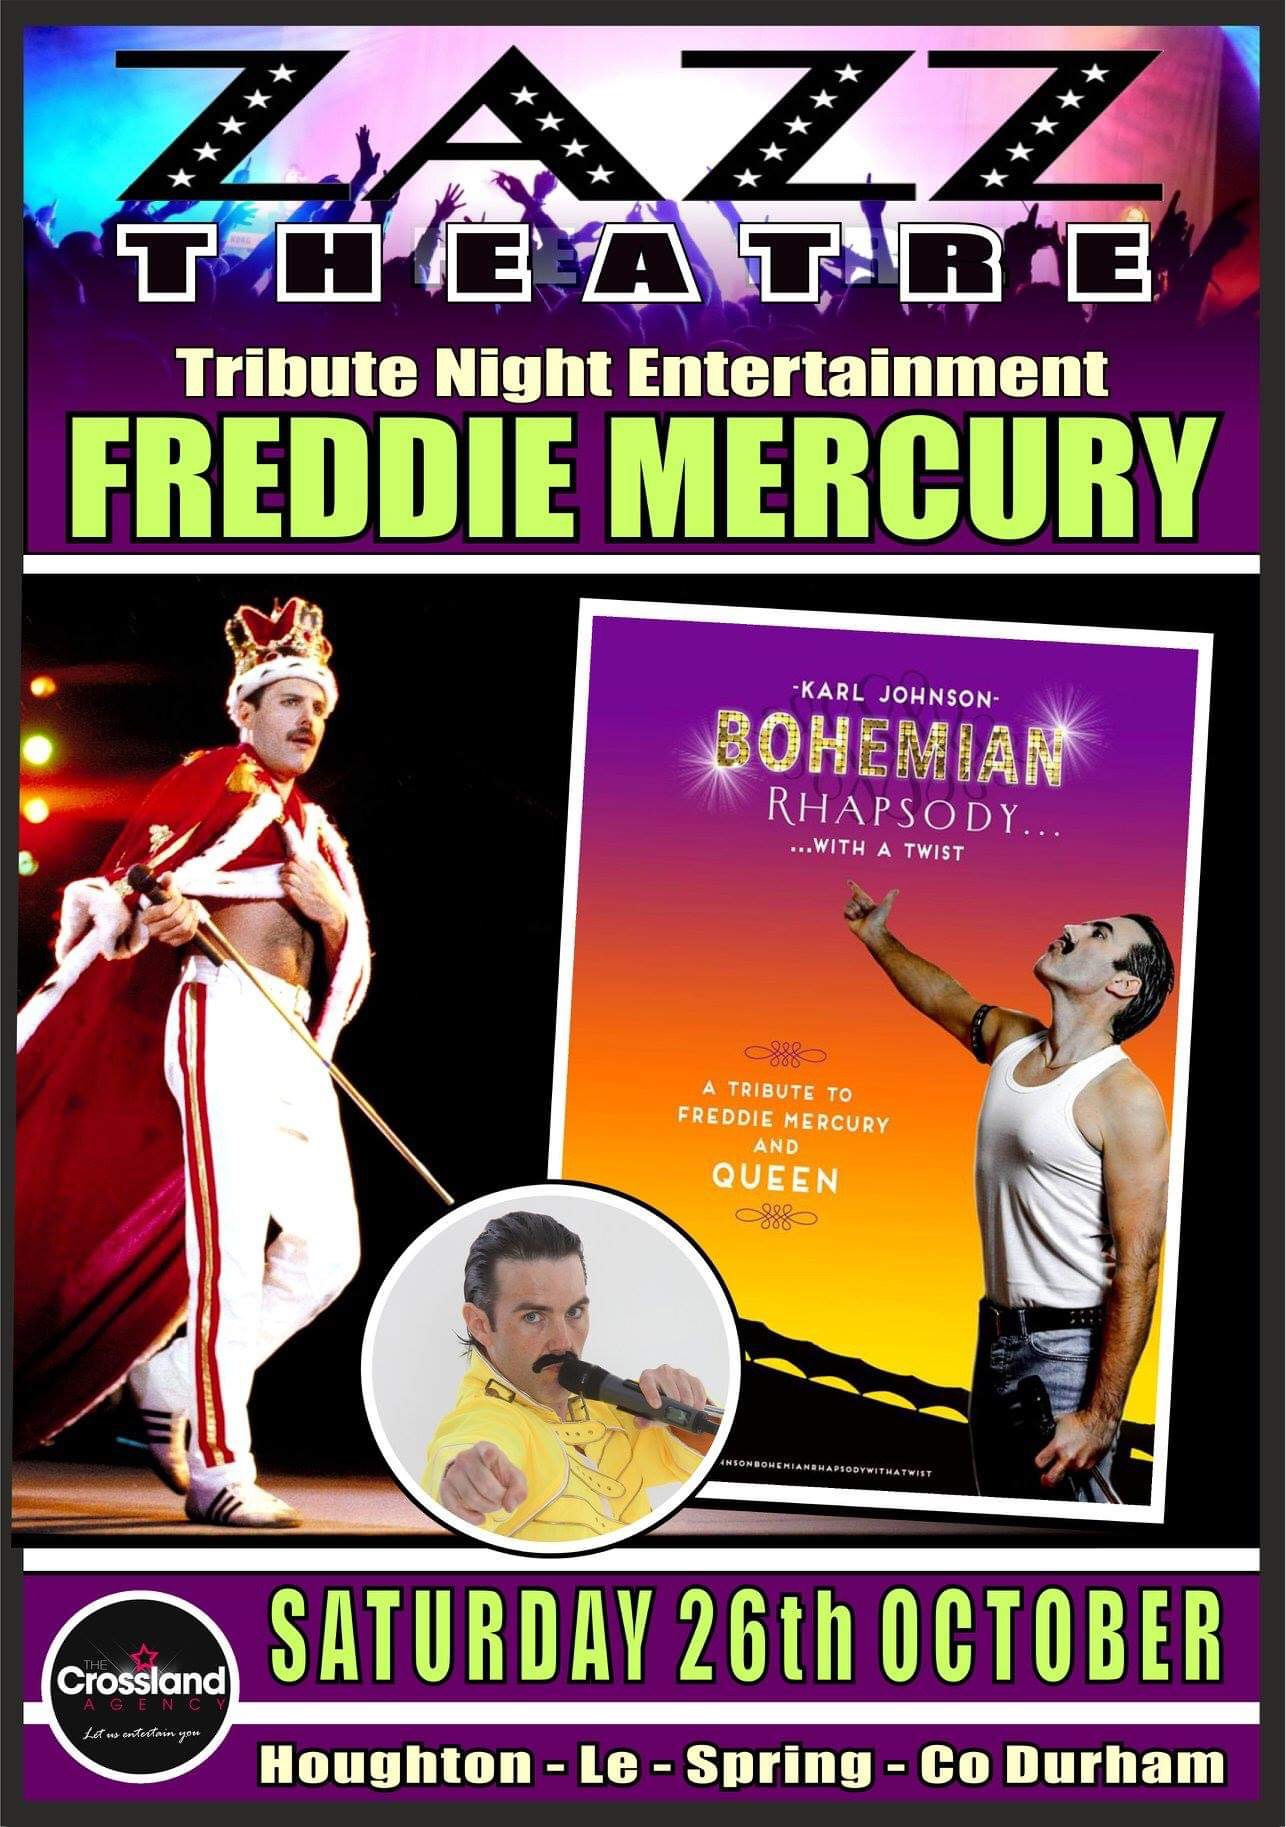 Freddie Mercury 26th October 2019